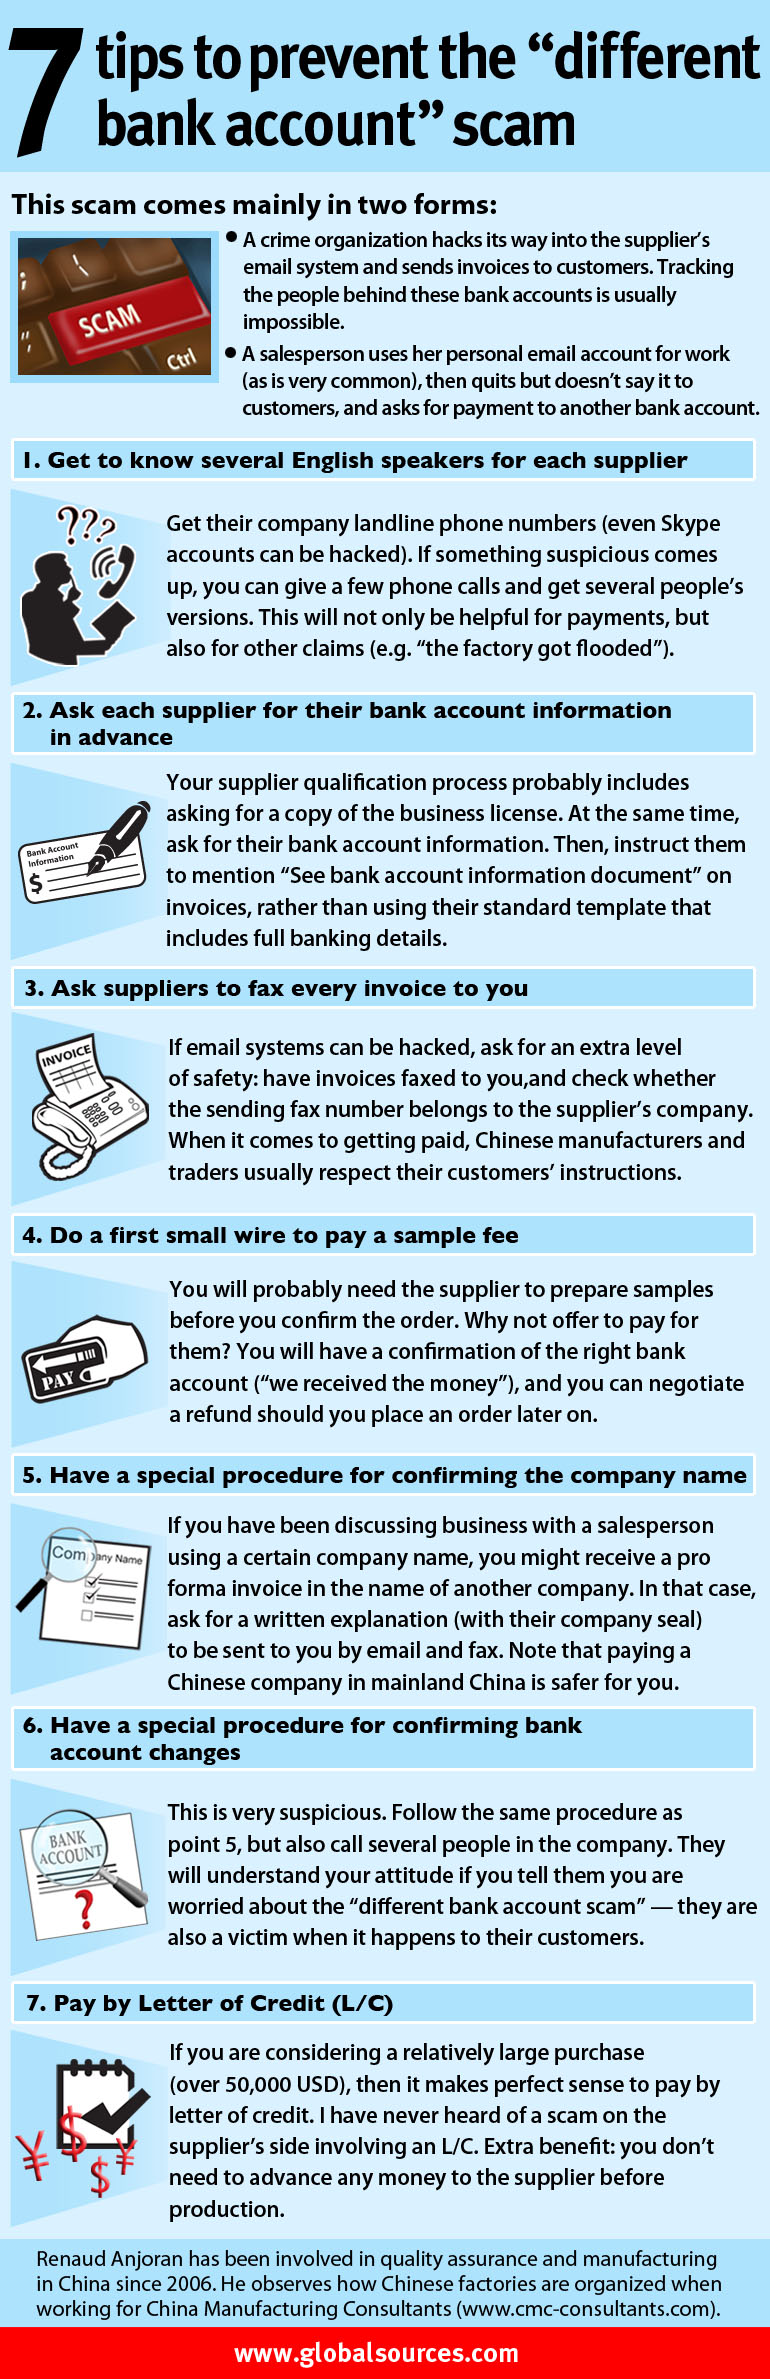 PREVENT_DIFFERENT_BANK_ACCOUNT_SCAM_INFOGRAPHIC_A